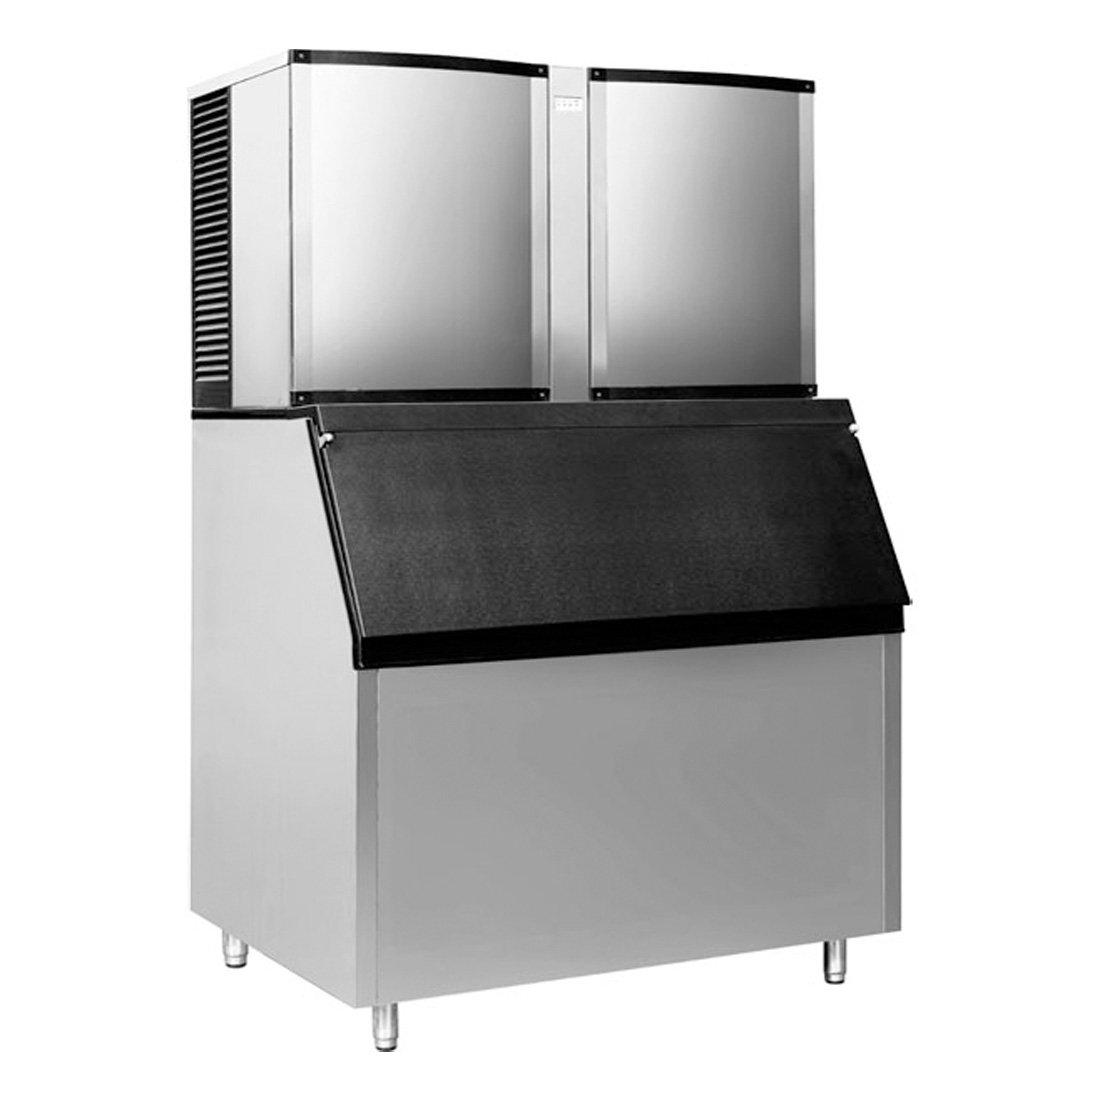 SK-2000P Air-Cooled Blizzard Ice Maker